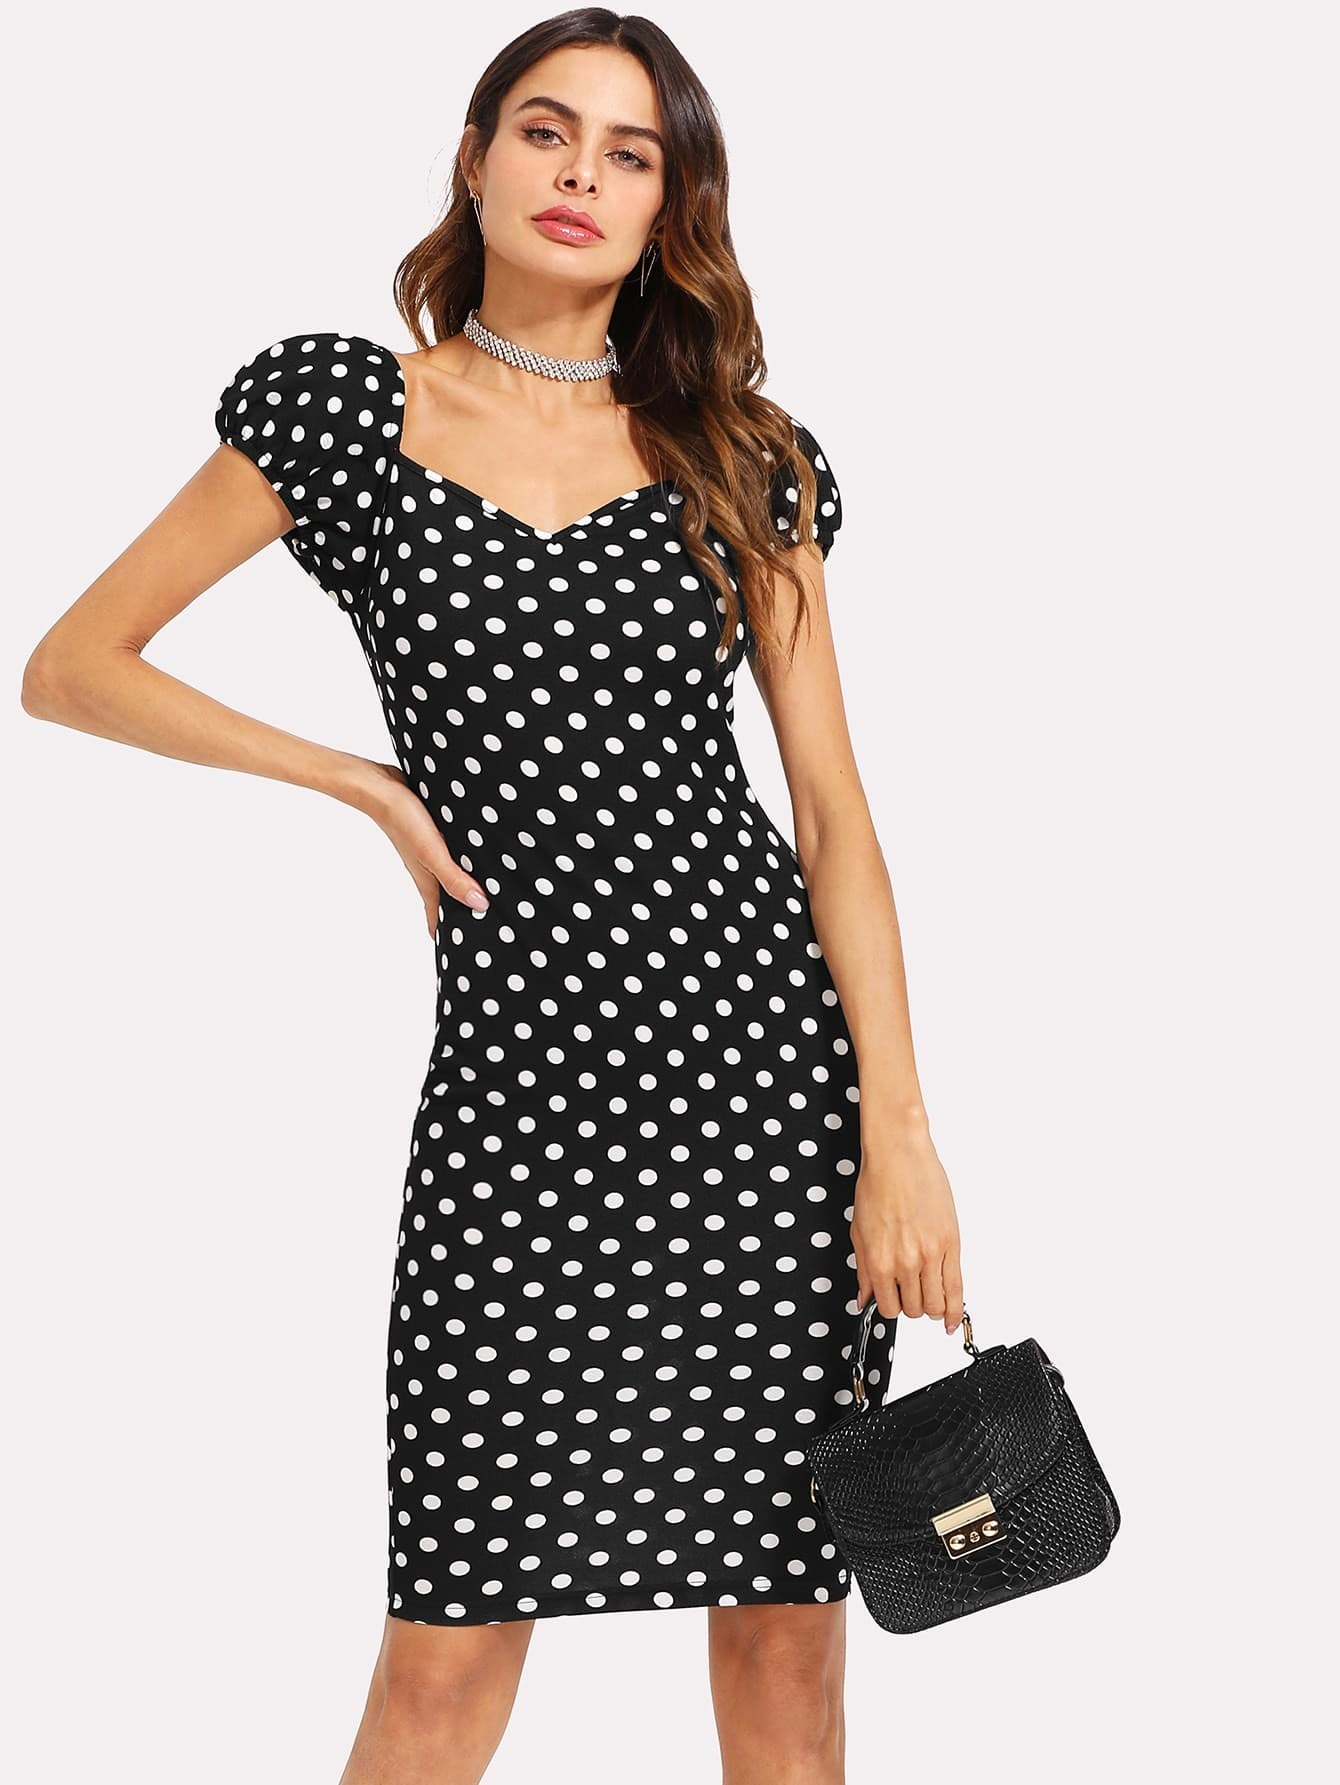 где купить Polka Dot Puff Sleeve Pencil Dress дешево